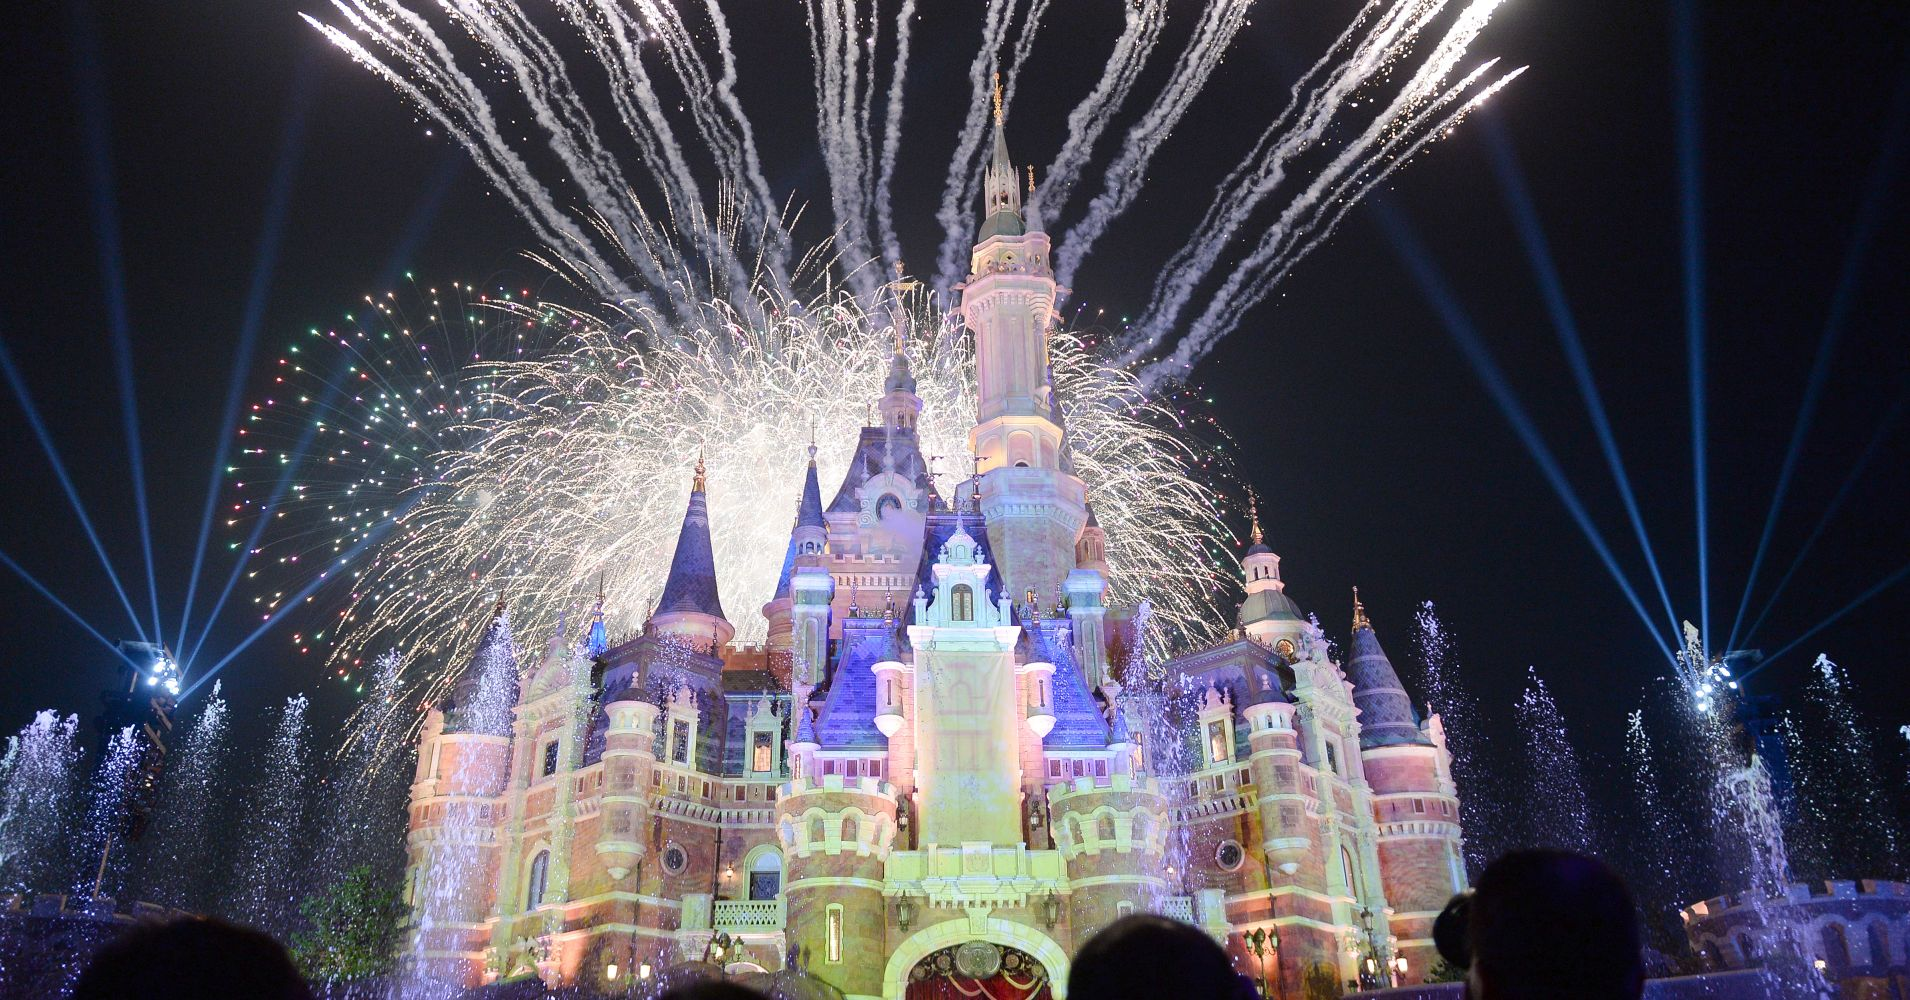 Tourists watch the celebration show marking the first anniversary of the Shanghai Disney Resort at the 196.8-foot Enchanted Storybook Castle on June 16, 2017 in Shanghai, China.